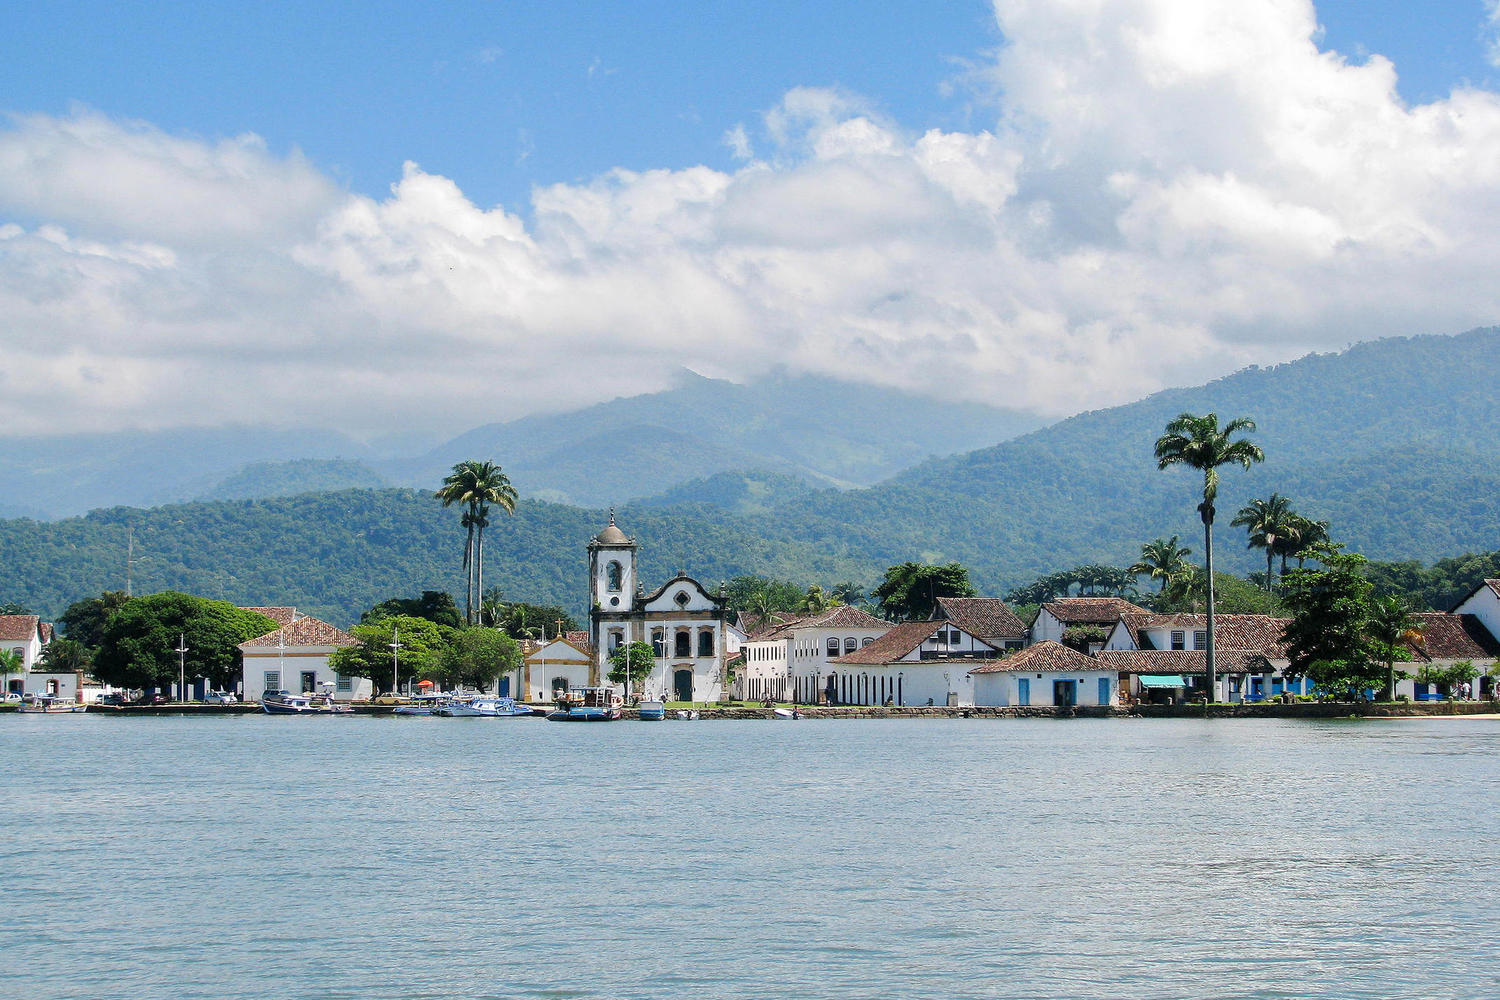 Looking across the bay to Paraty, Brazil